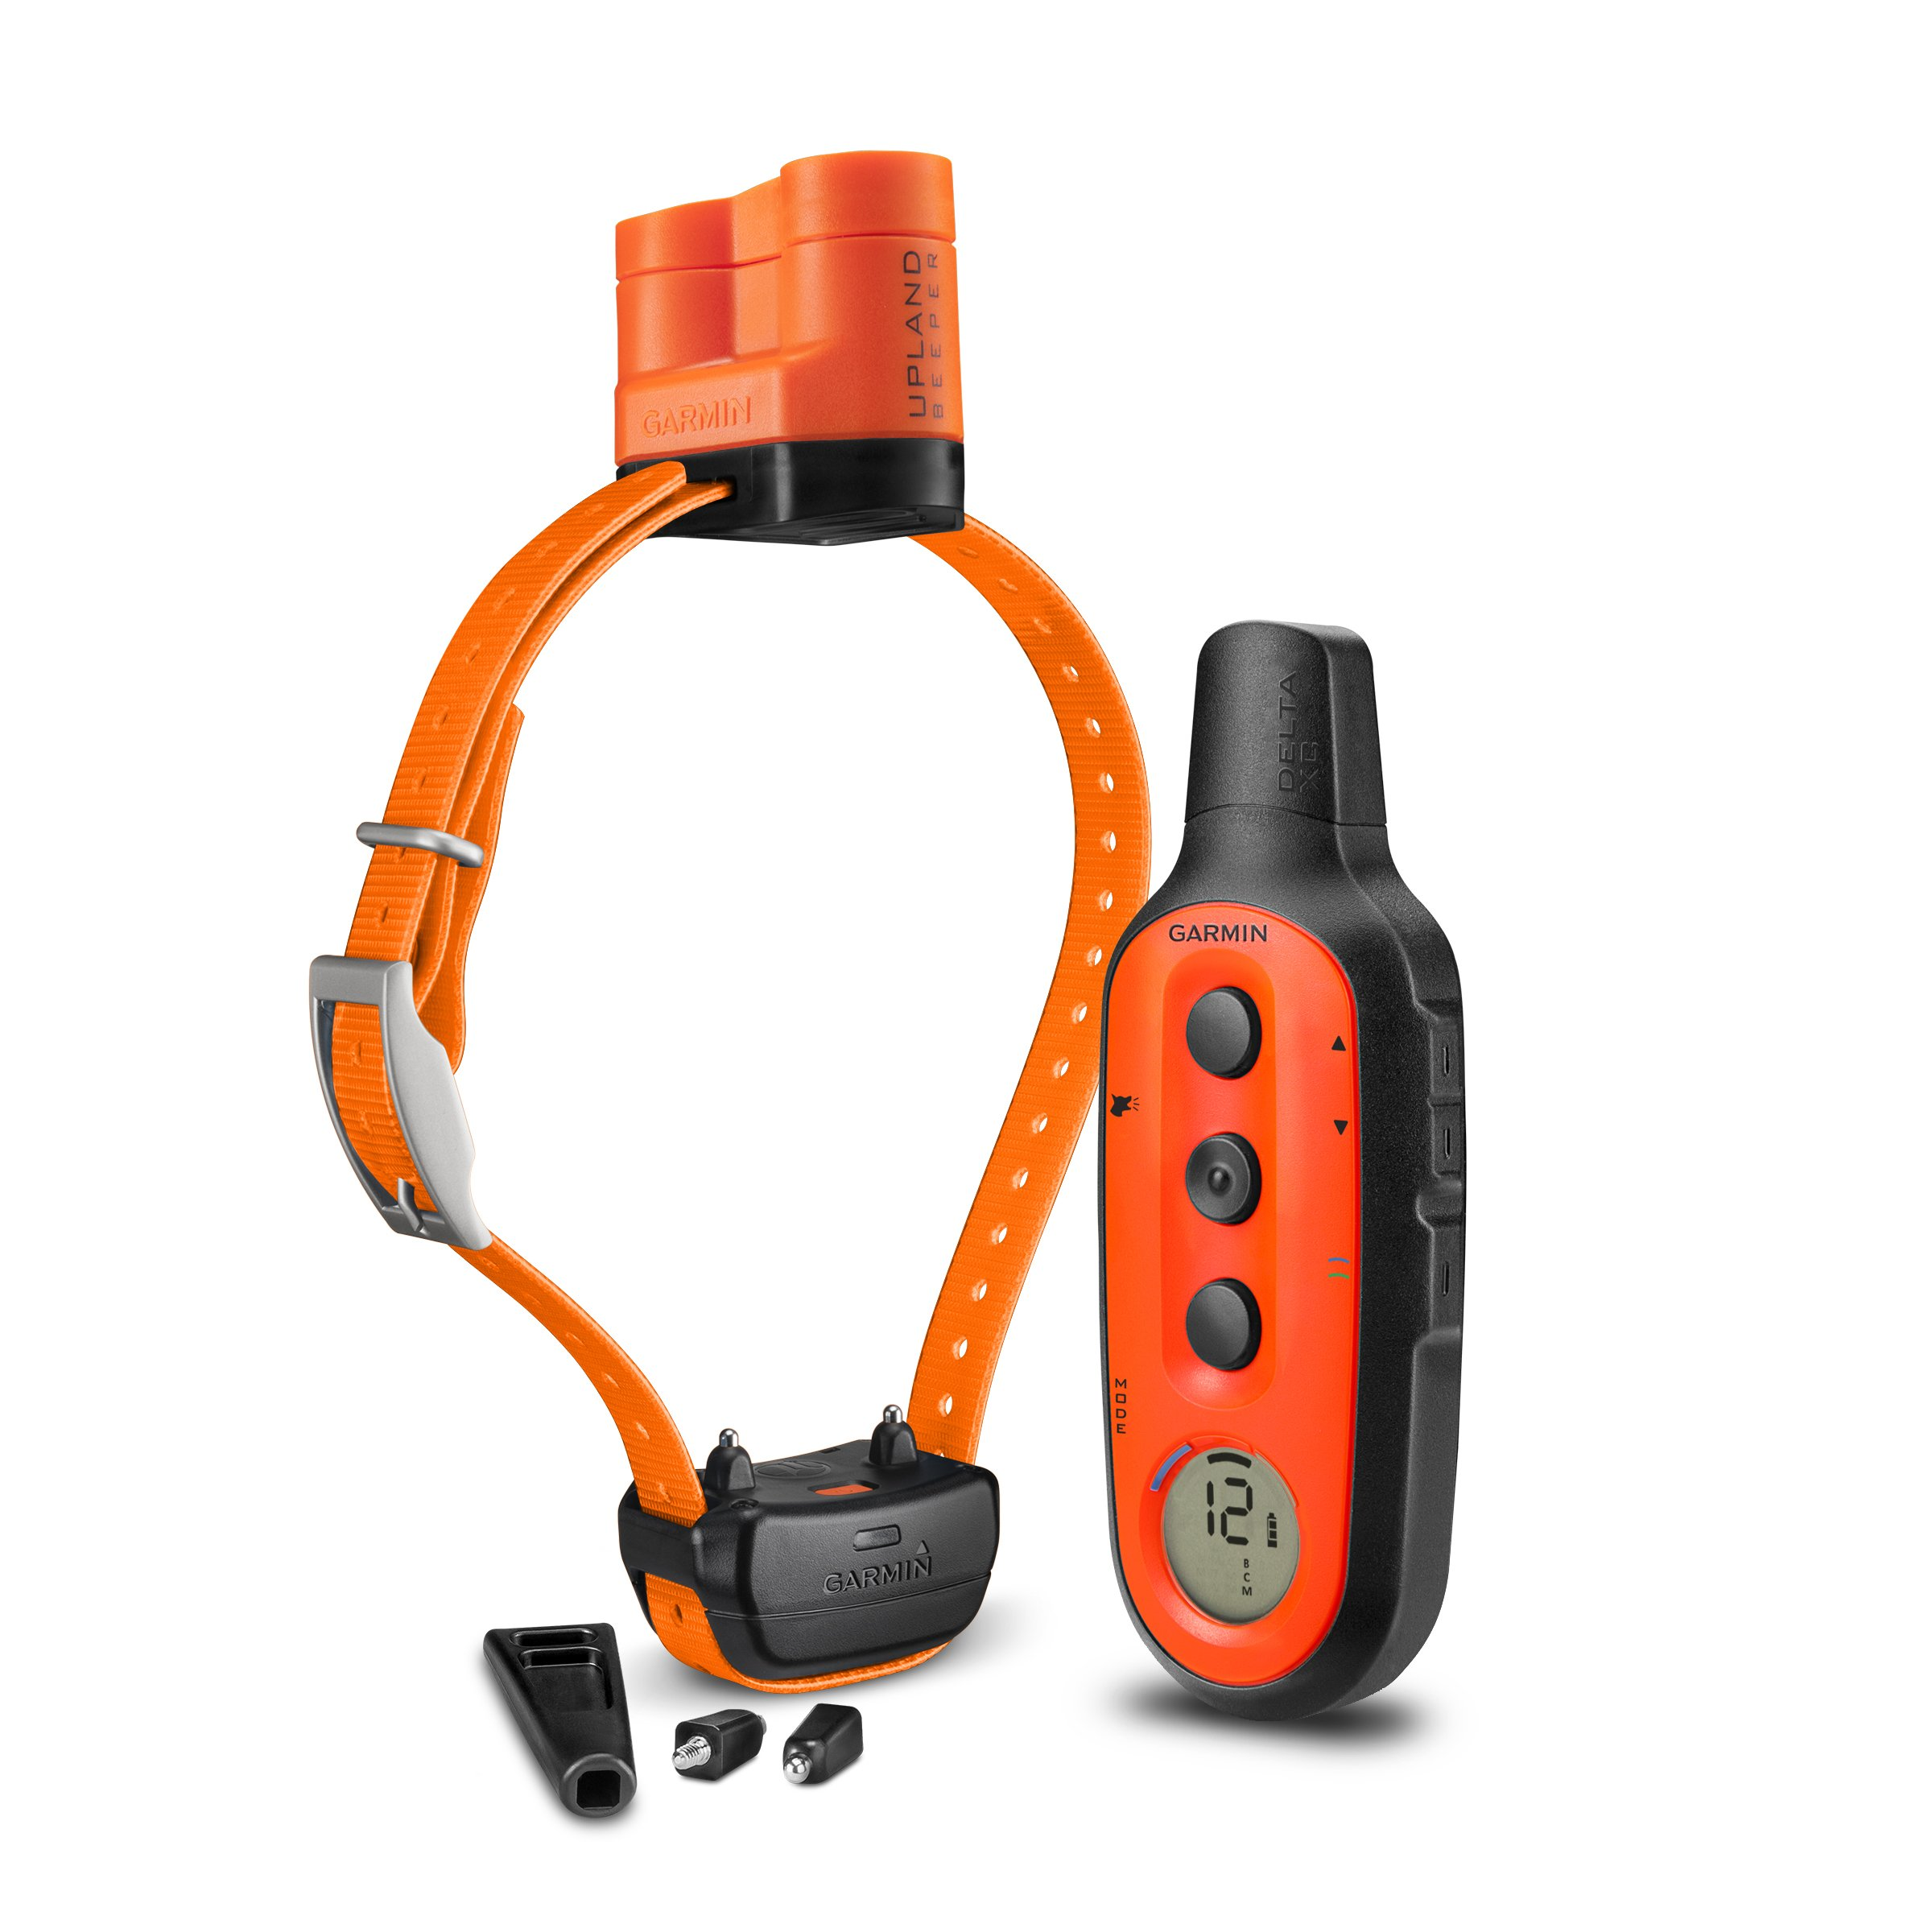 Garmin Delta Upland XC Bundle - dog training device by Garmin